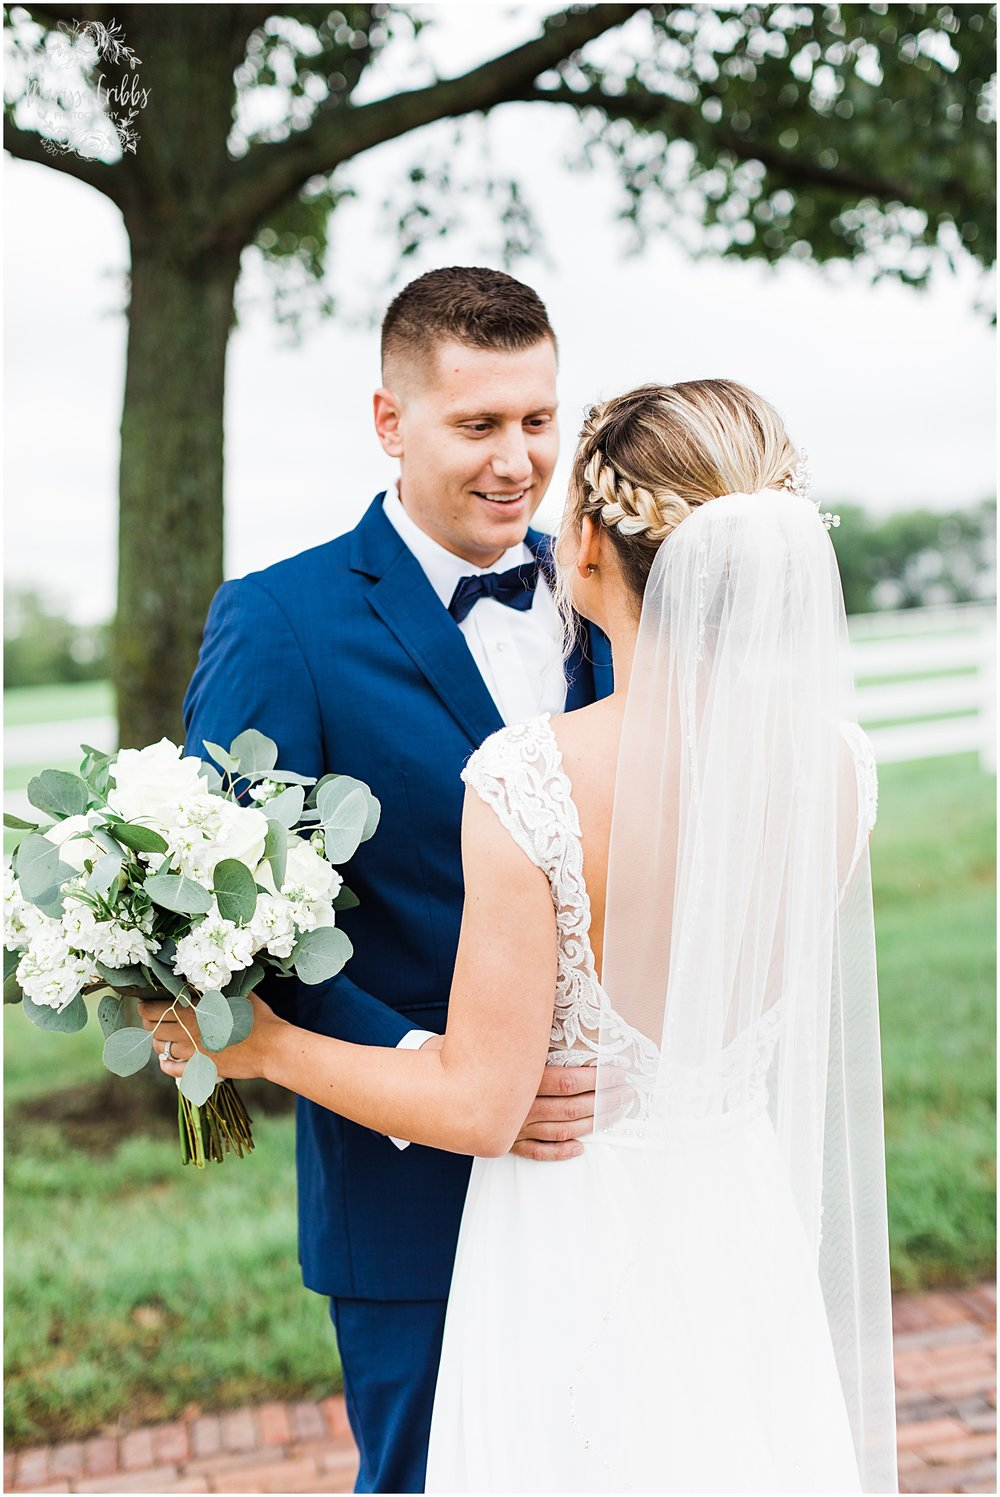 ROUNKLES WEDDING | MARISSA CRIBBS PHOTOGRAPHY | MILDALE FARM_6108.jpg